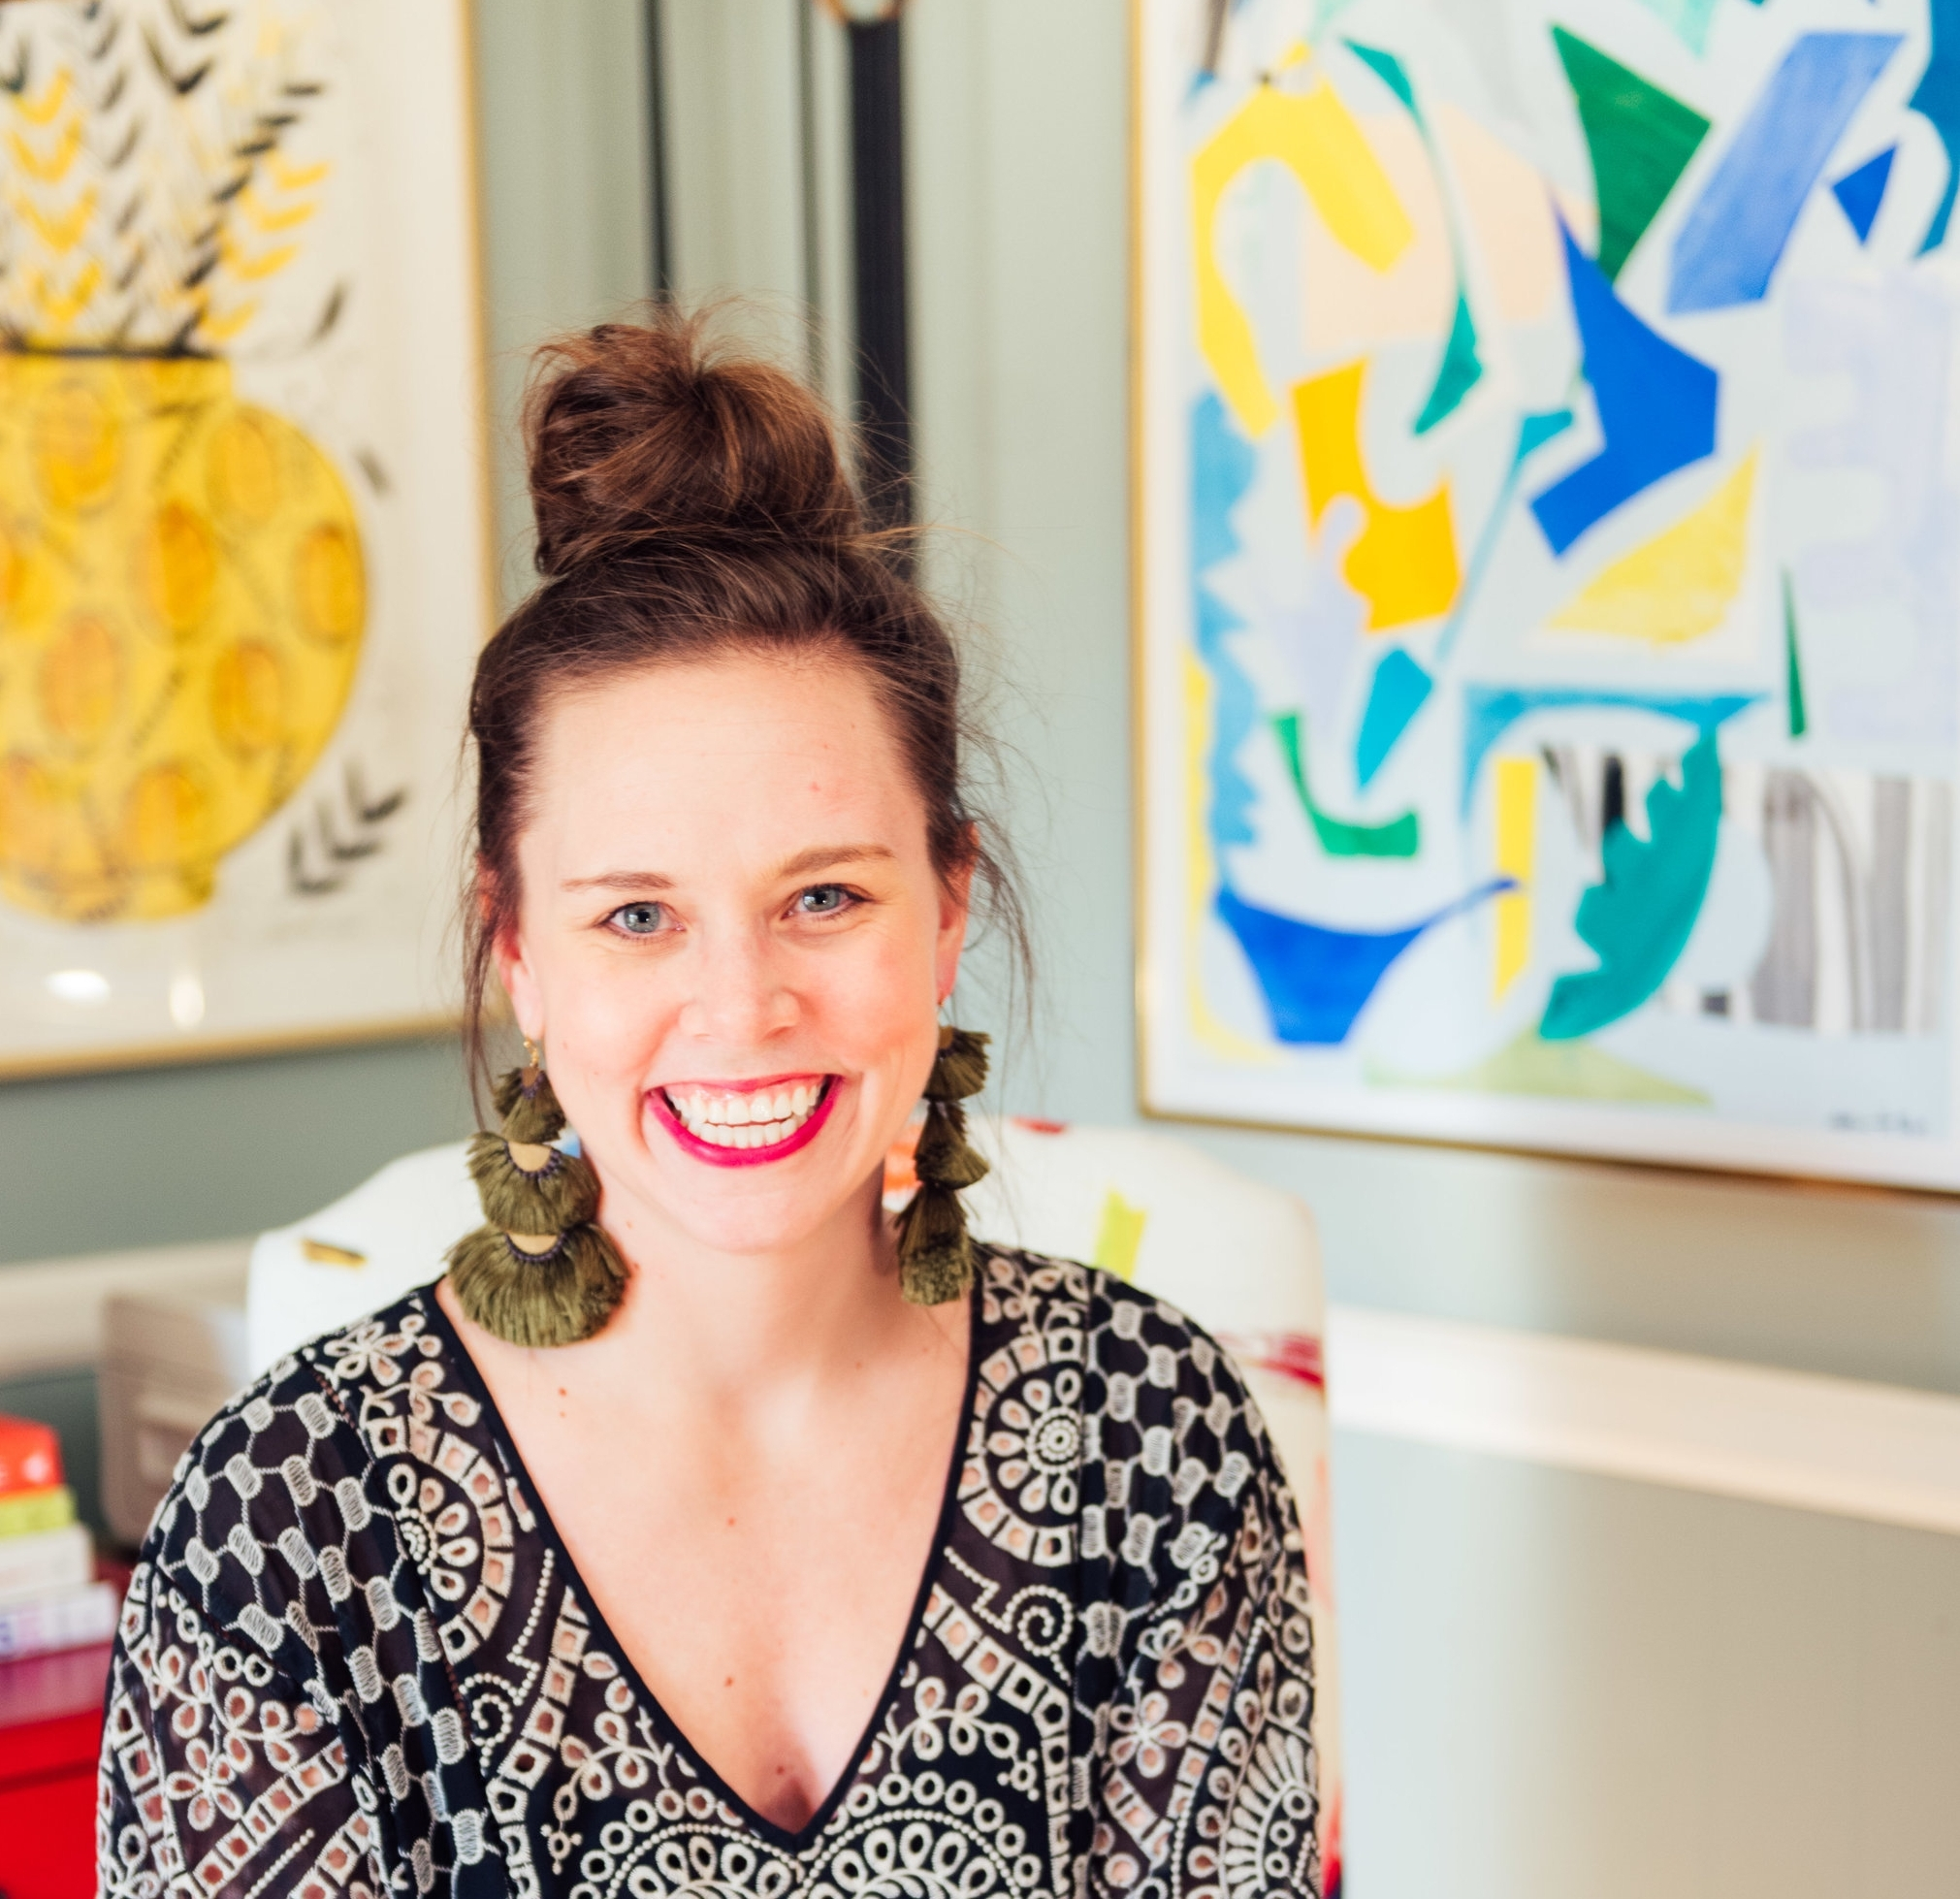 Amanda Louise Interiors - Amanda Louise has been an Art & Light artist cheerleader for years and is the queen of gallery walls and mixing pattern and color. Click the image to see a few images from some of her projects featuring Art & Light Gallery Artists.